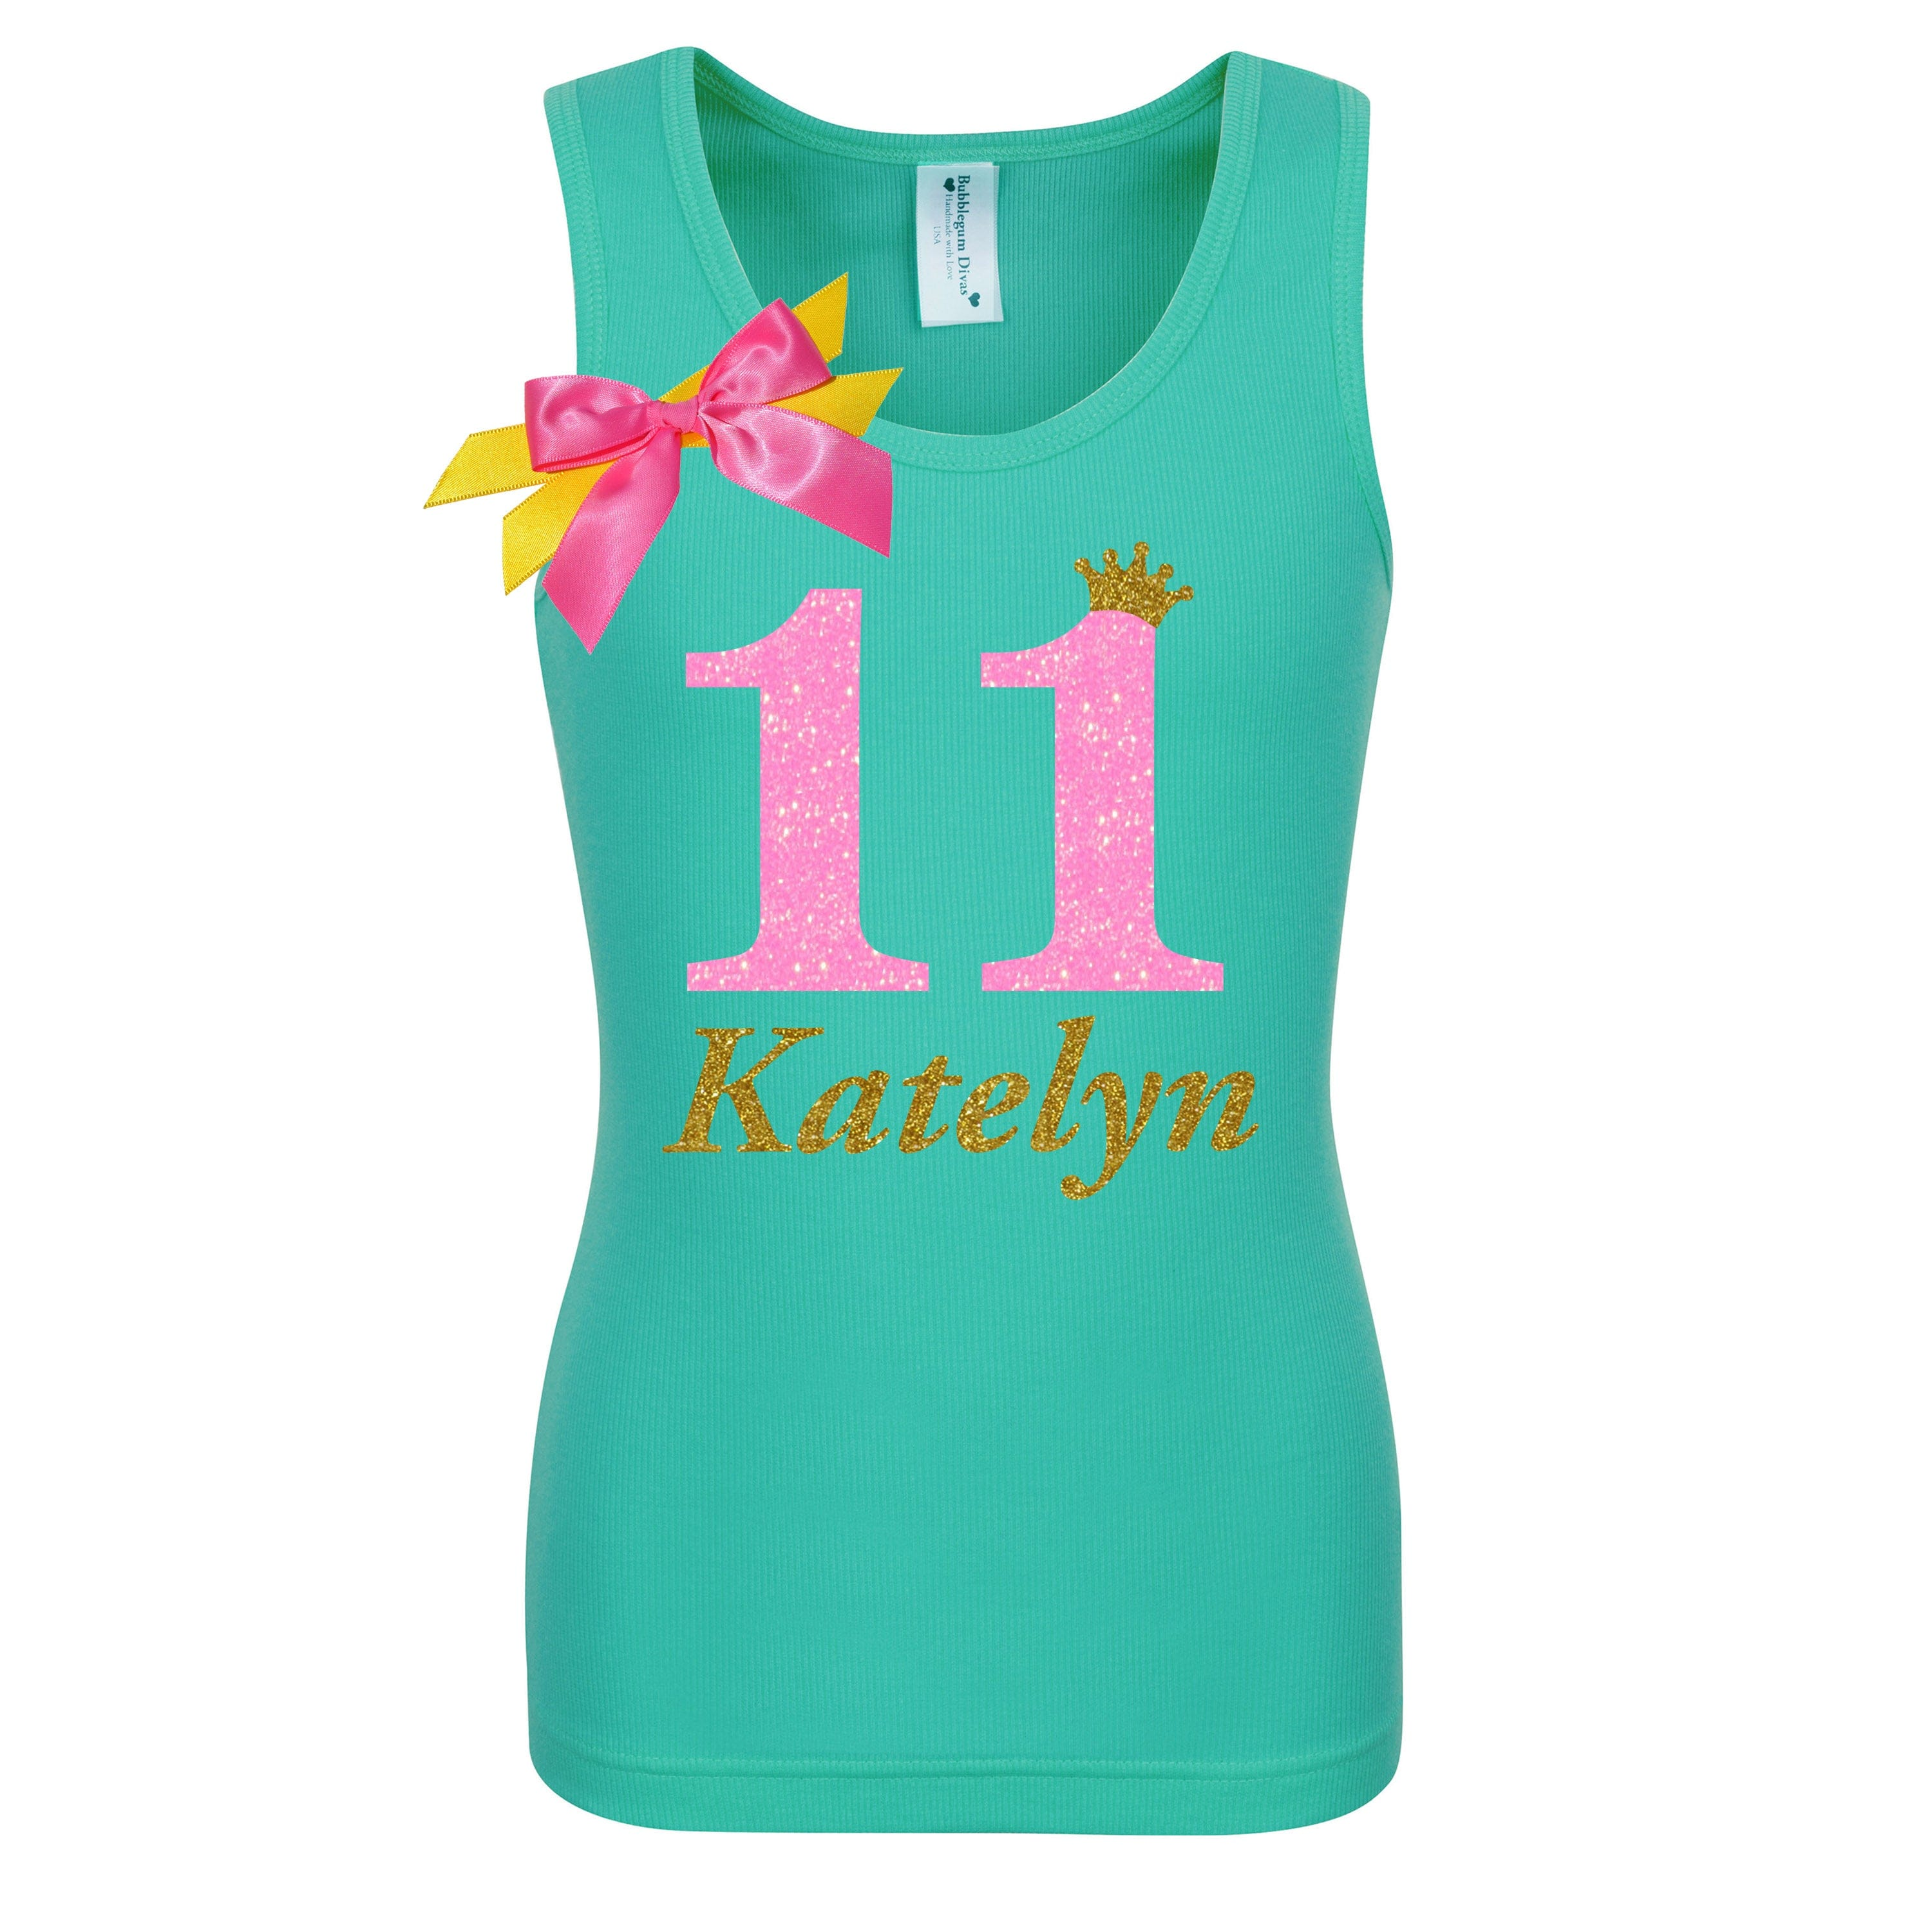 11th Birthday Shirt Neon Pink Personalized Name Age 11 - Shirt - Bubblegum Divas Store